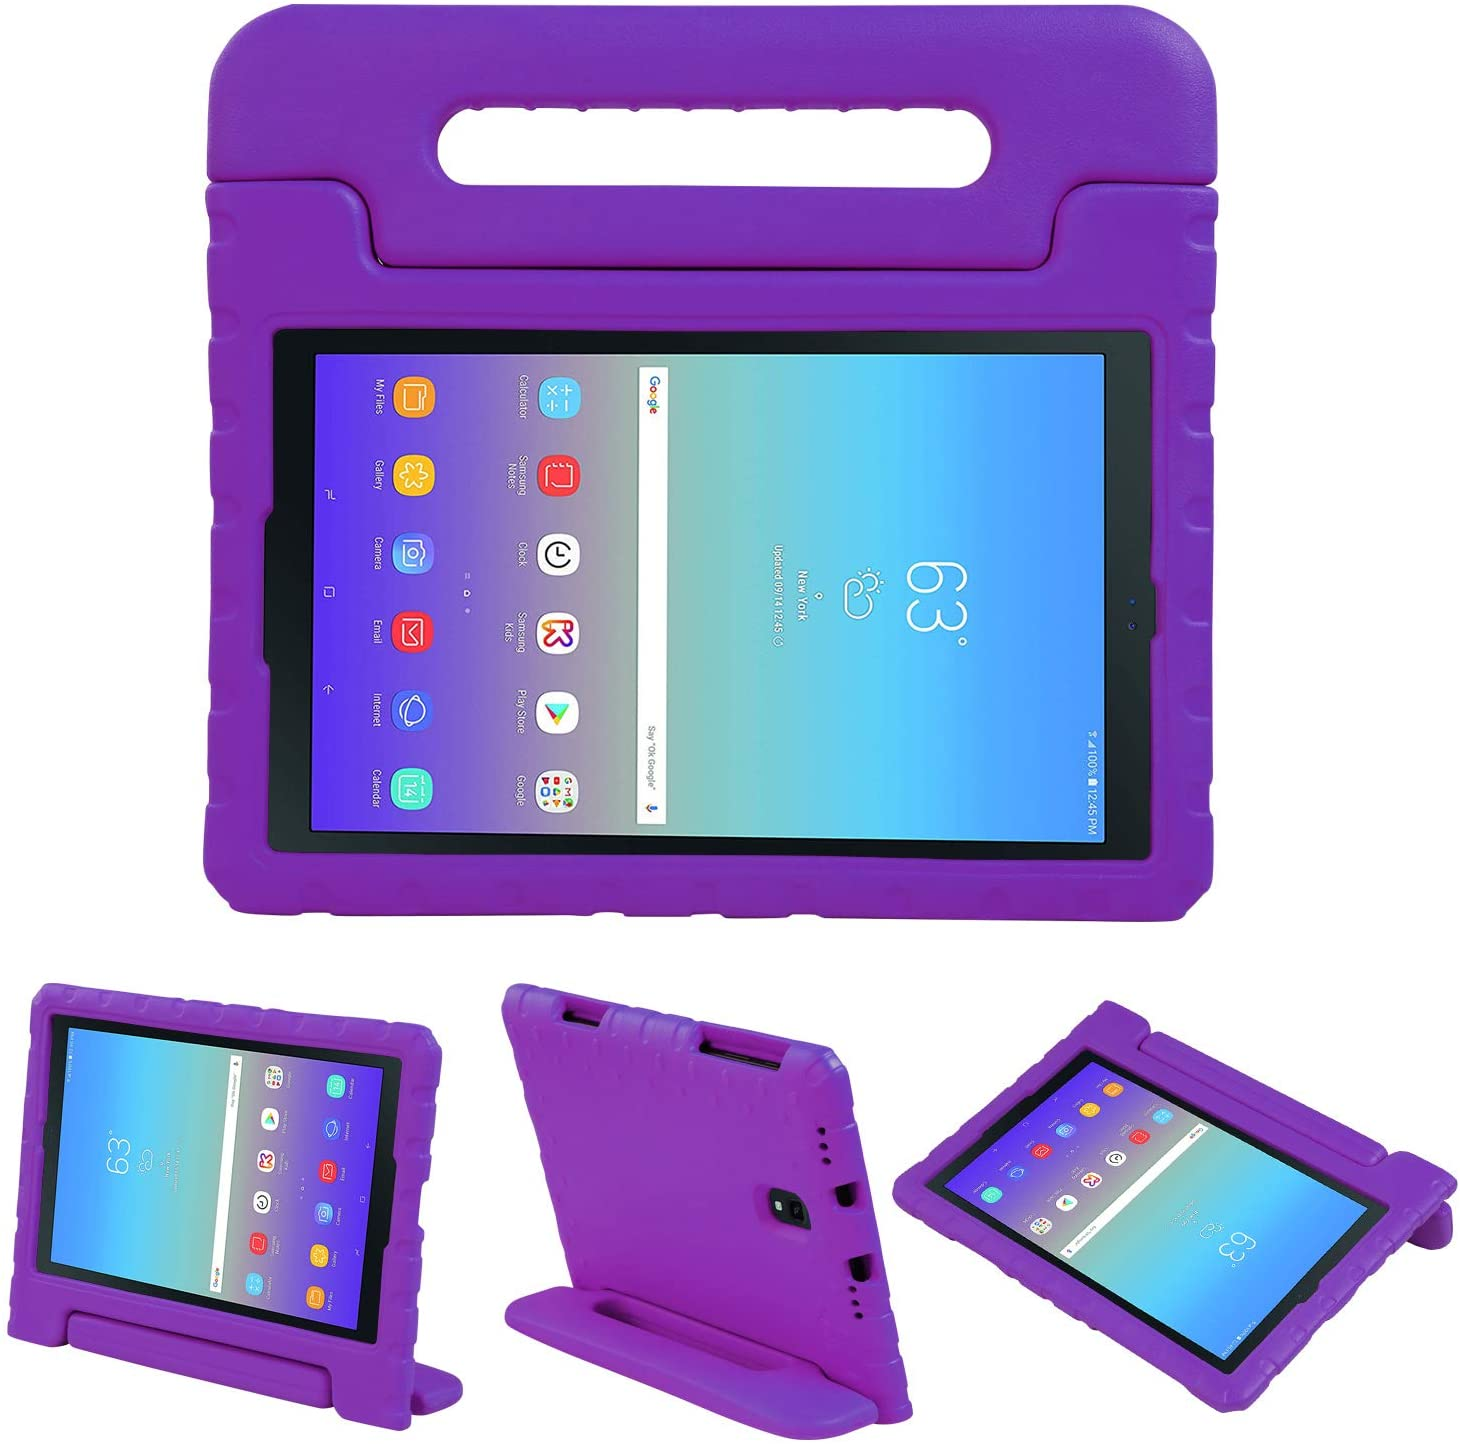 NEWSTYLE Kids Case for Samsung Galaxy Tab A 10.5 Inch 2018 - Shockproof Light Weight Protective Handle Stand EVA Kids Case for Samsung Galaxy Tab A 10.5 2018 Model SM-T590 T595 T597 (Purple)